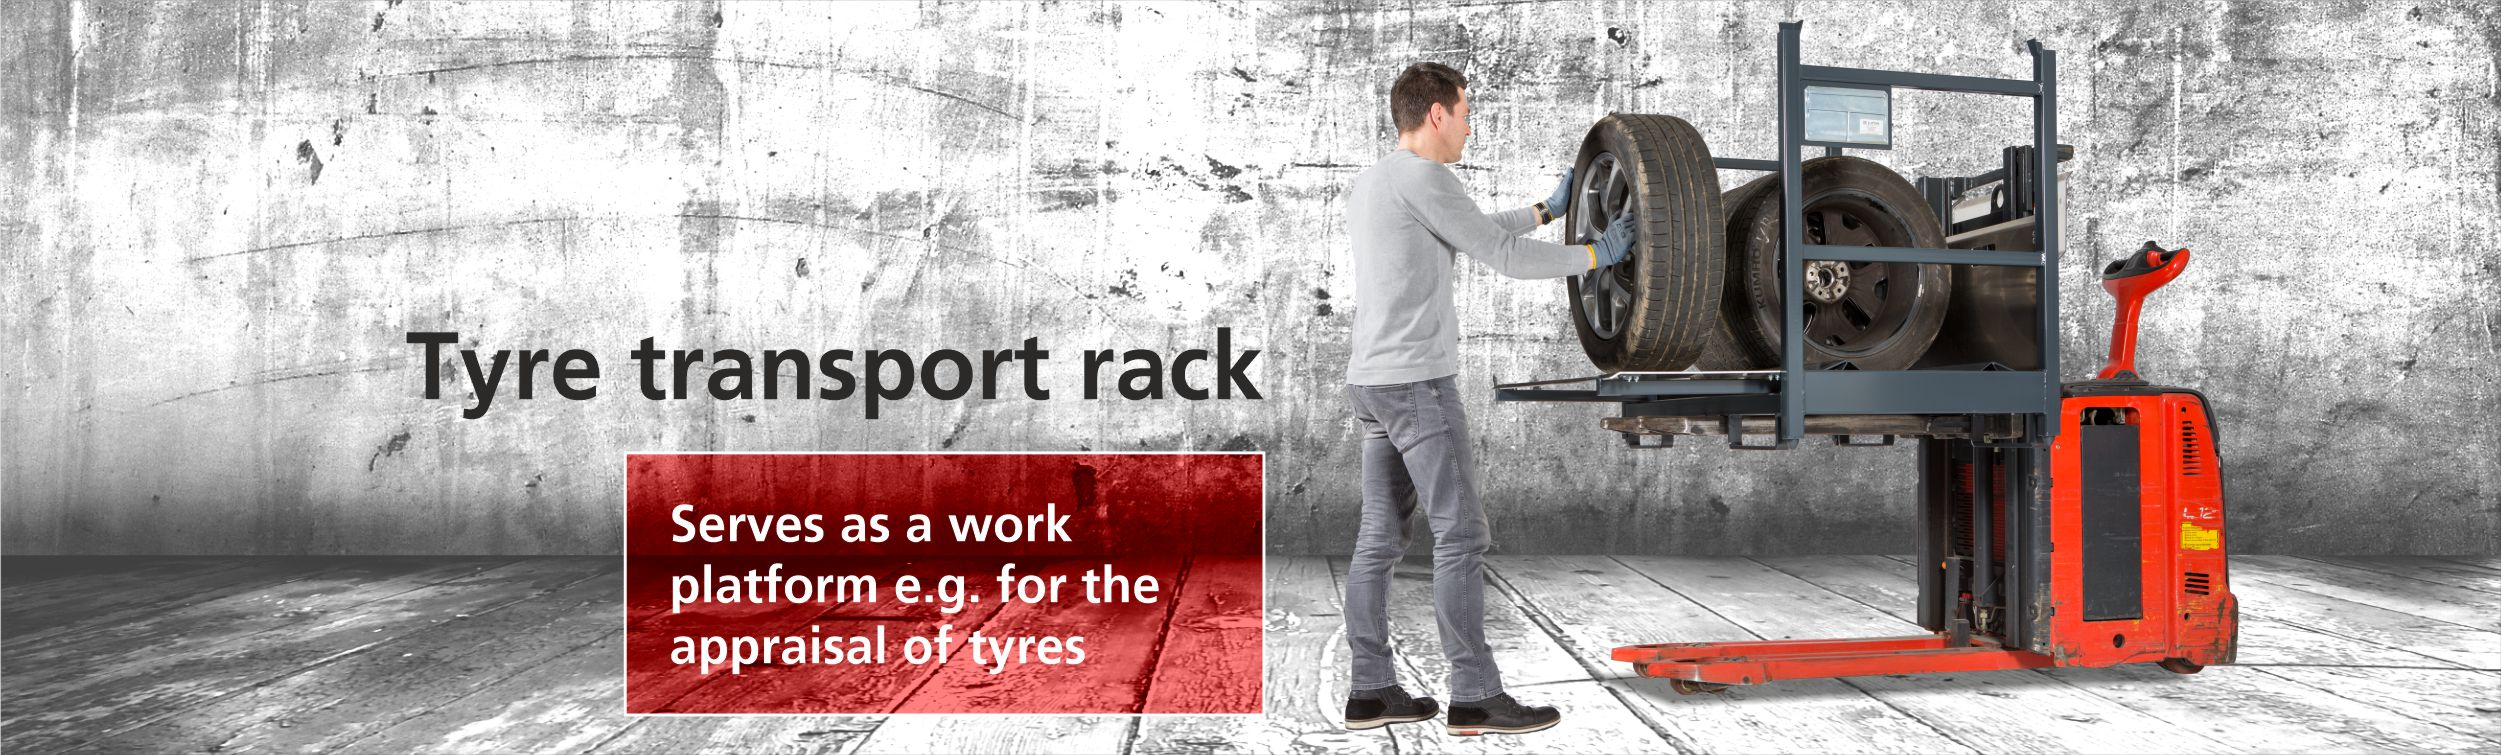 tyre_transport_rack